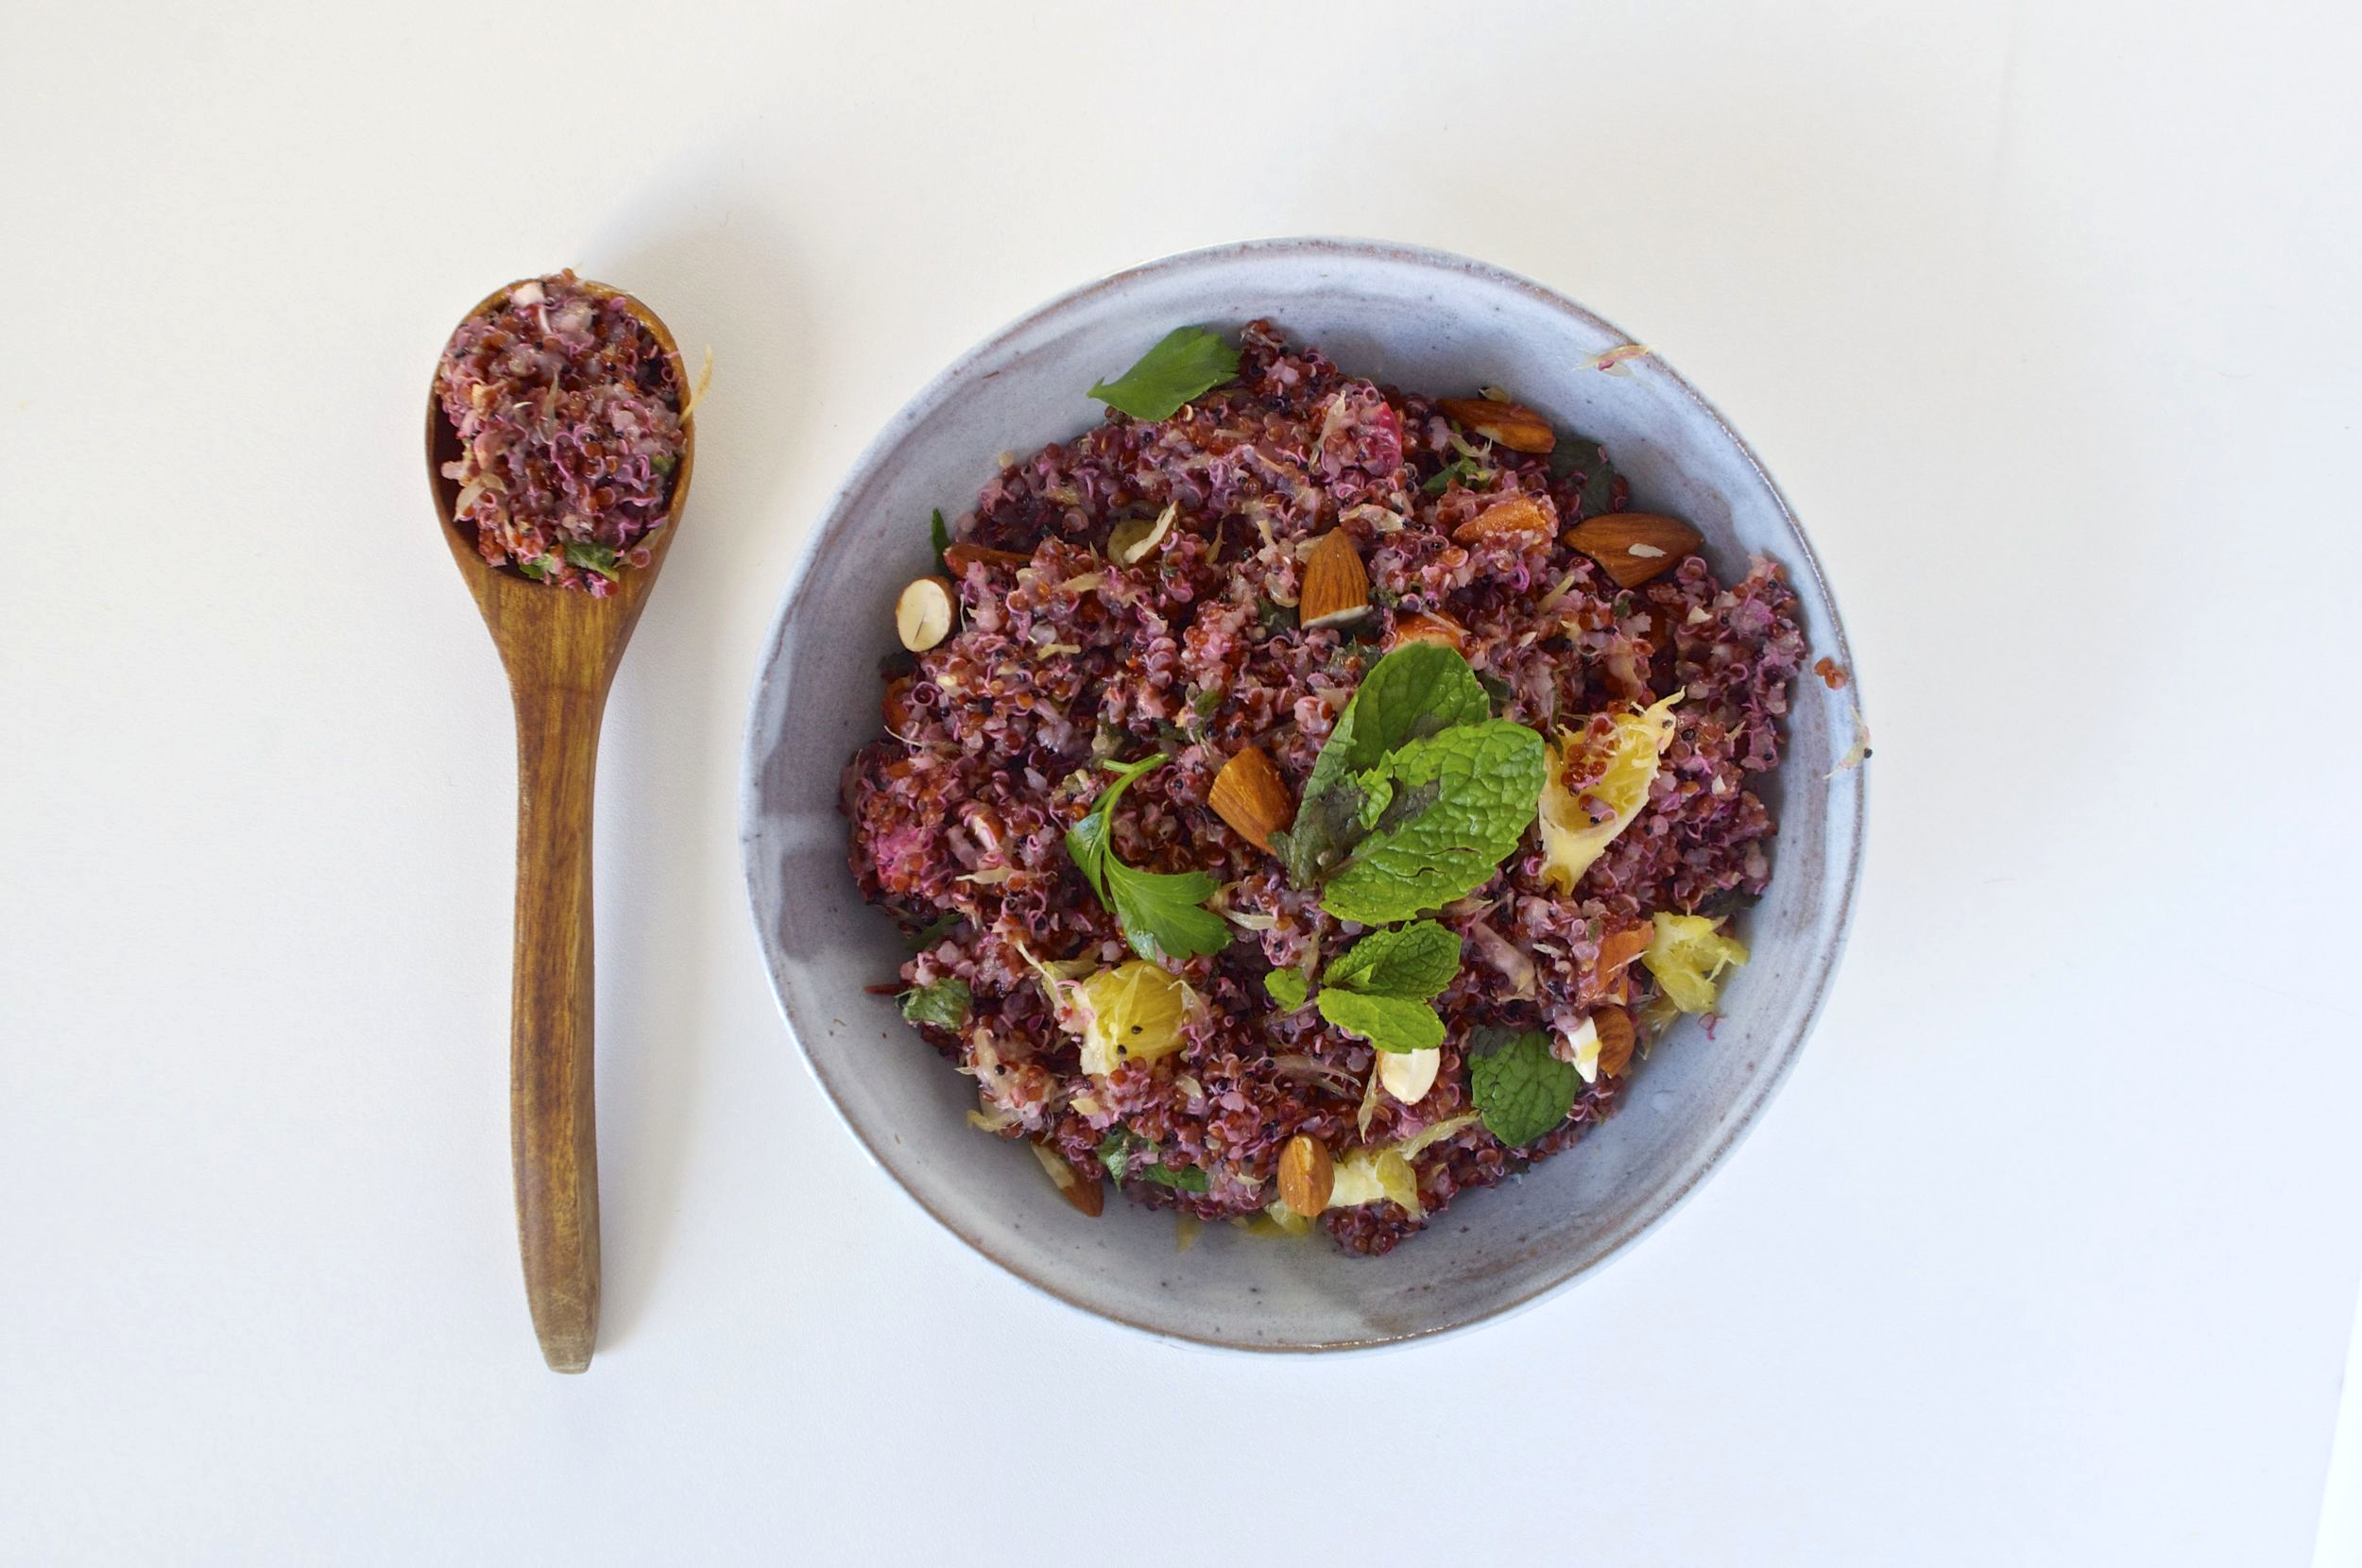 cranberry-mint-quinoa-salad-14.jpg